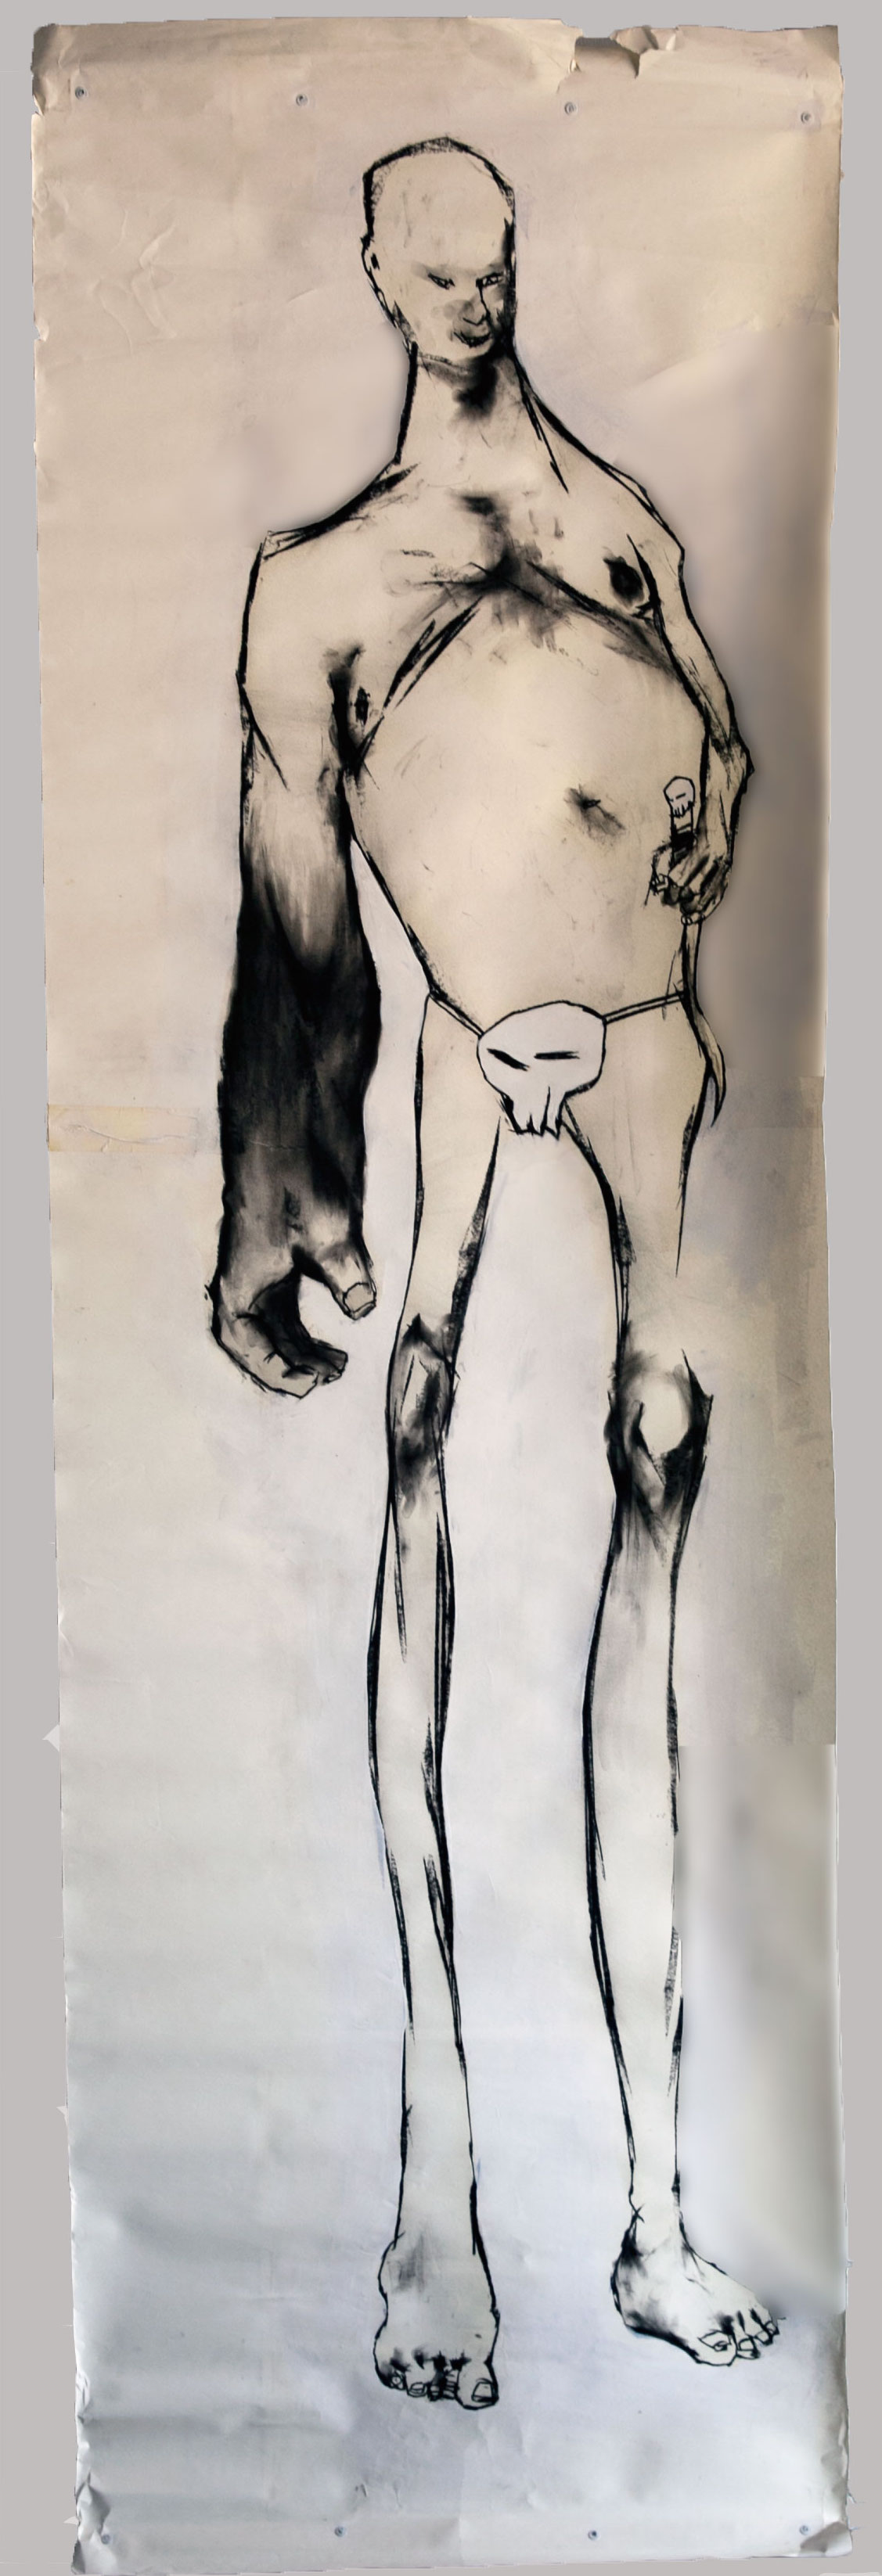 Roy -  charcoal and latex on paper 3'x8'